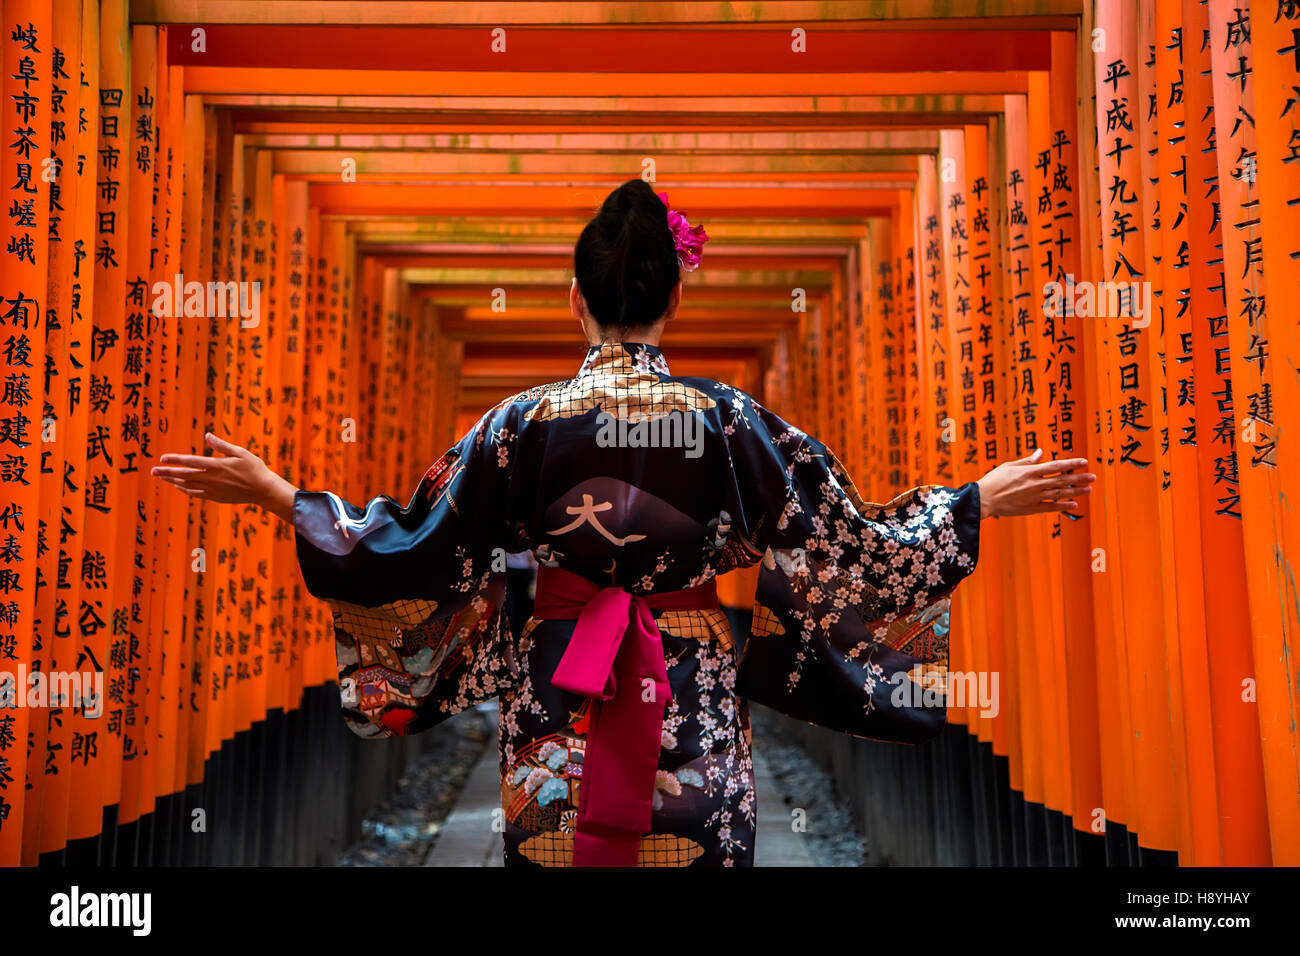 KYOTO, JAPAN - OCTOBER 8, 2016: Unidentified woman at walkway in Fushimi Inari shrine in Kyoto, Japan. This popular - Stock Image